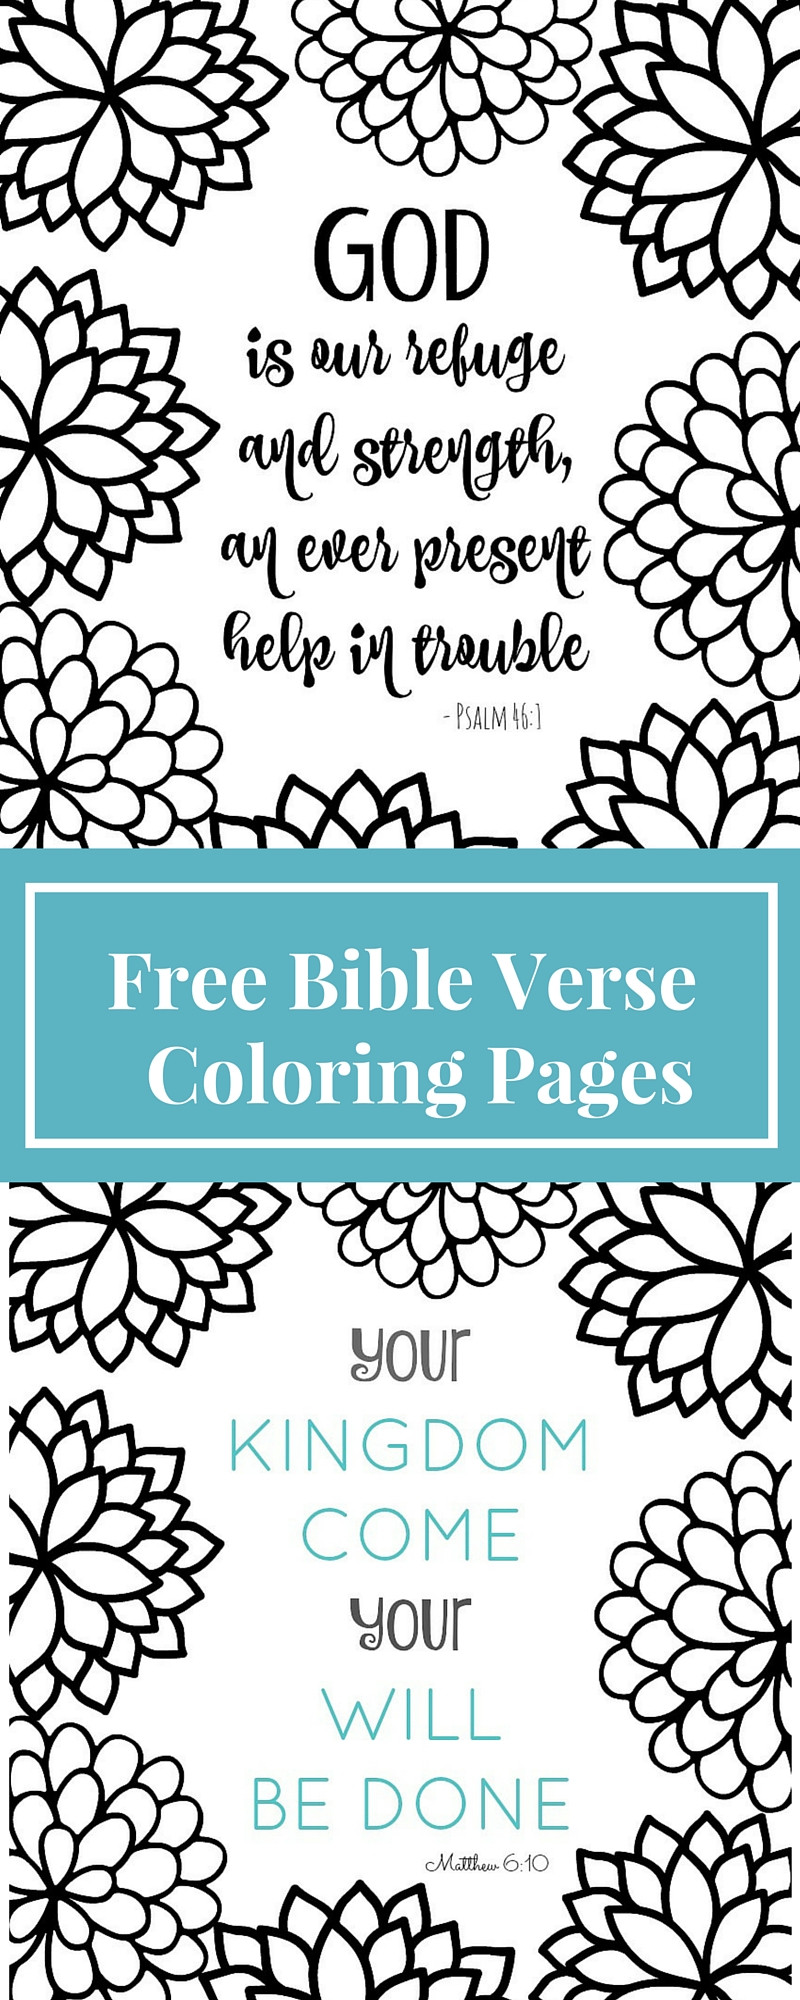 Bible Verses Coloring Pages For Adults  Free Printable Bible Verse Coloring Pages with Bursting